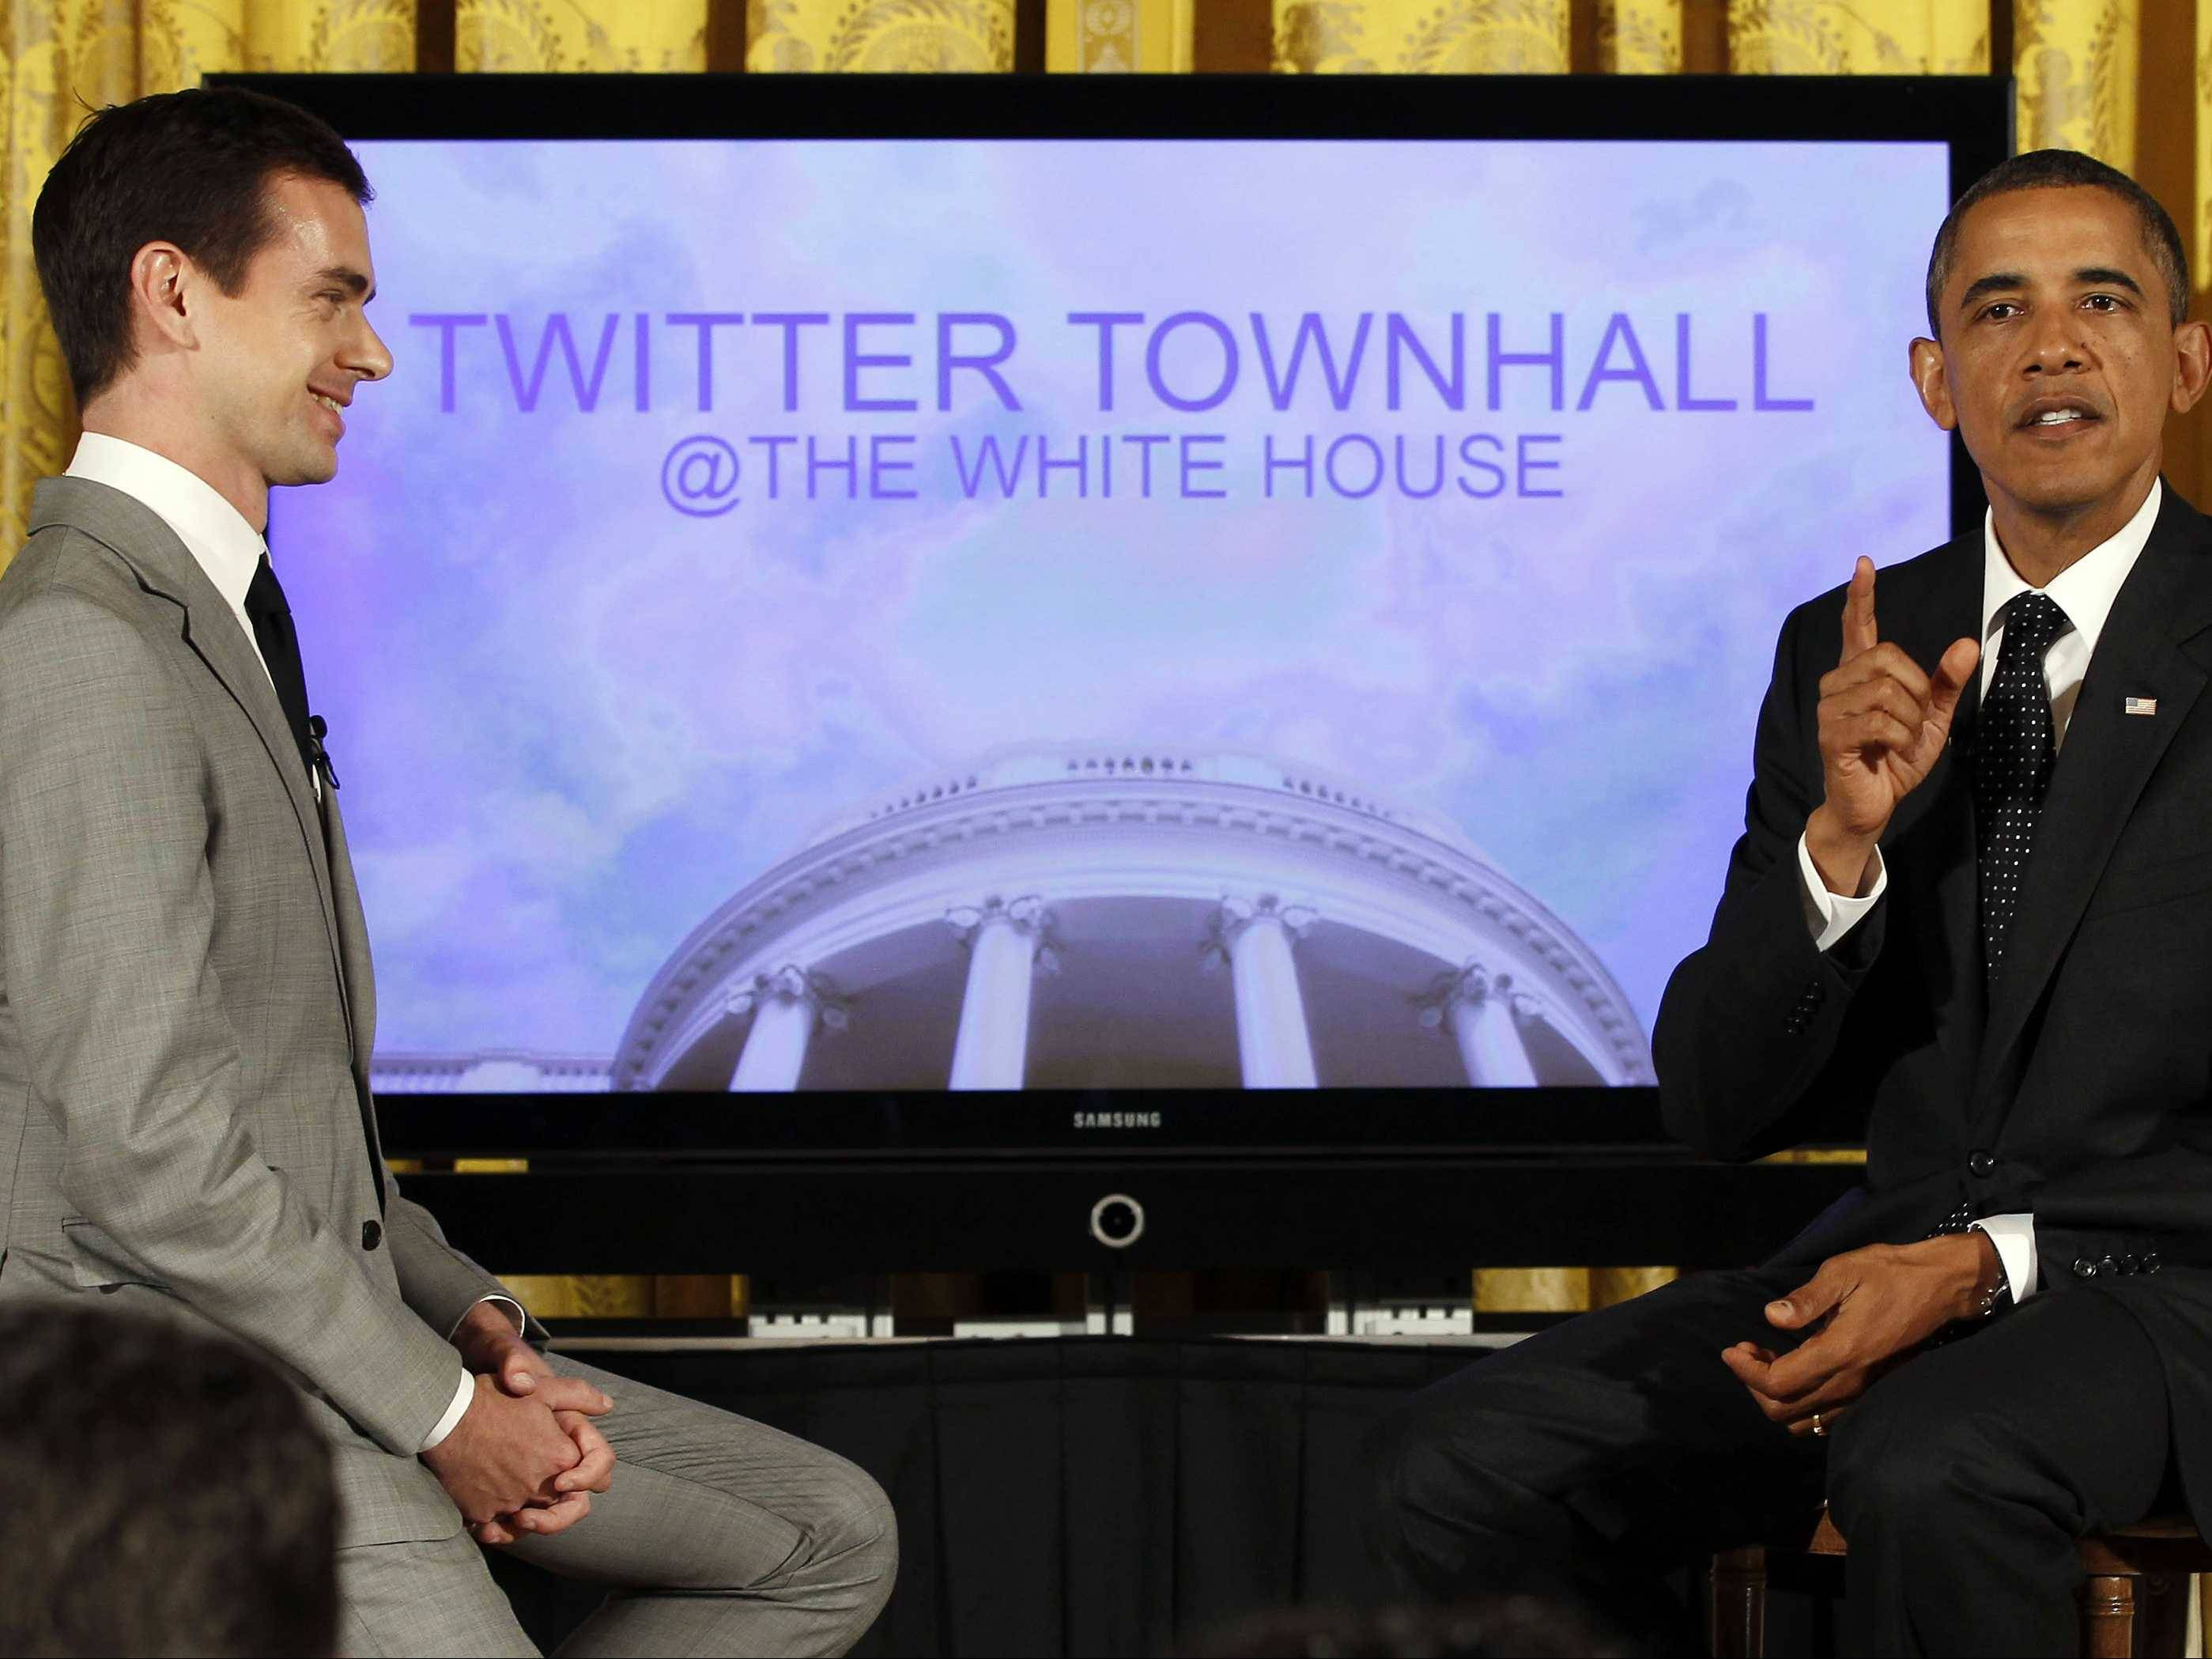 Dorsey interviews barack obama